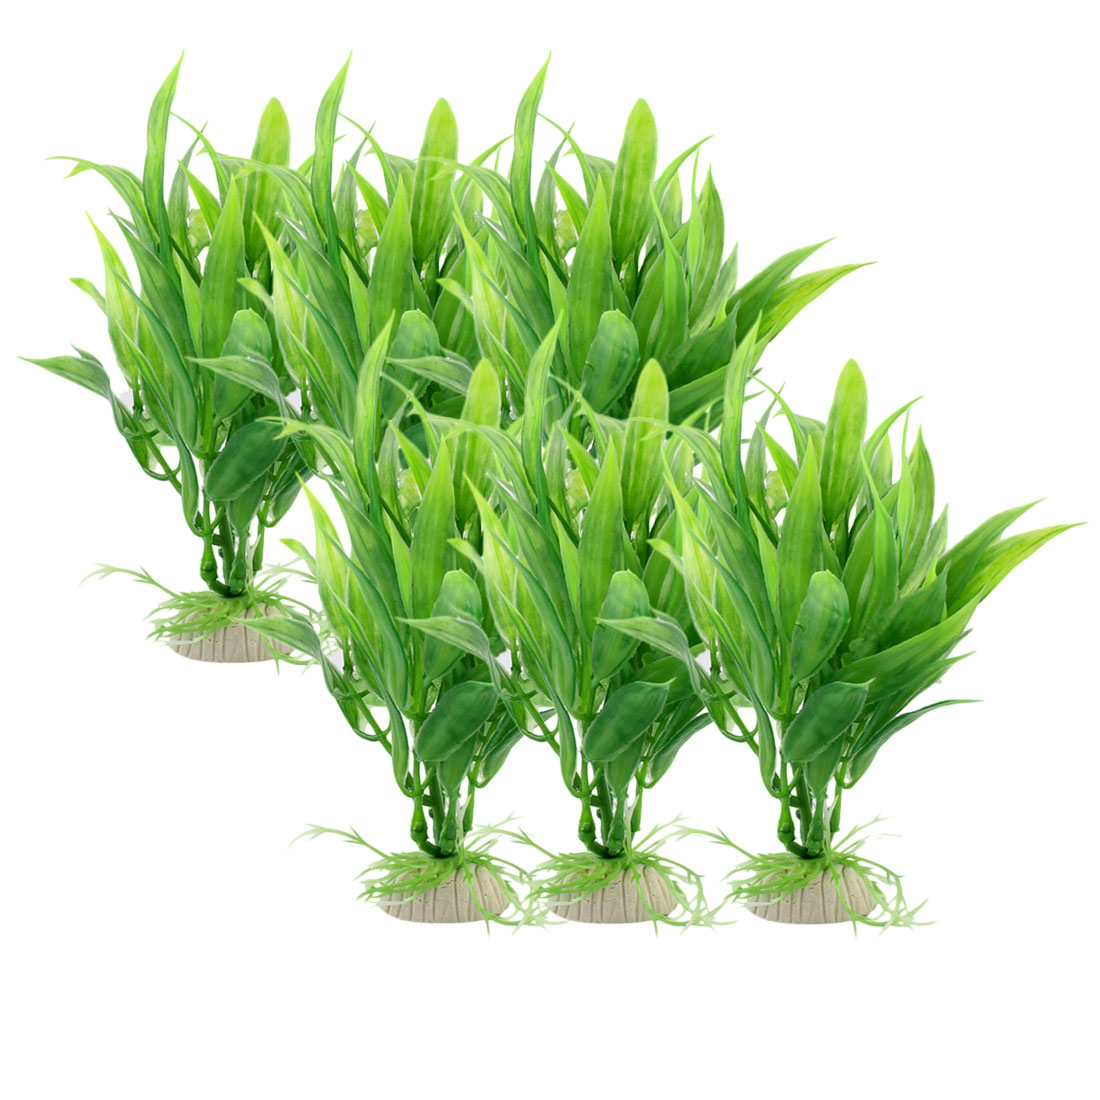 Fish Tank Aquarium Plastic Artificial Water Lucky Bamboo Plant Ornamental Decoration 6pcs